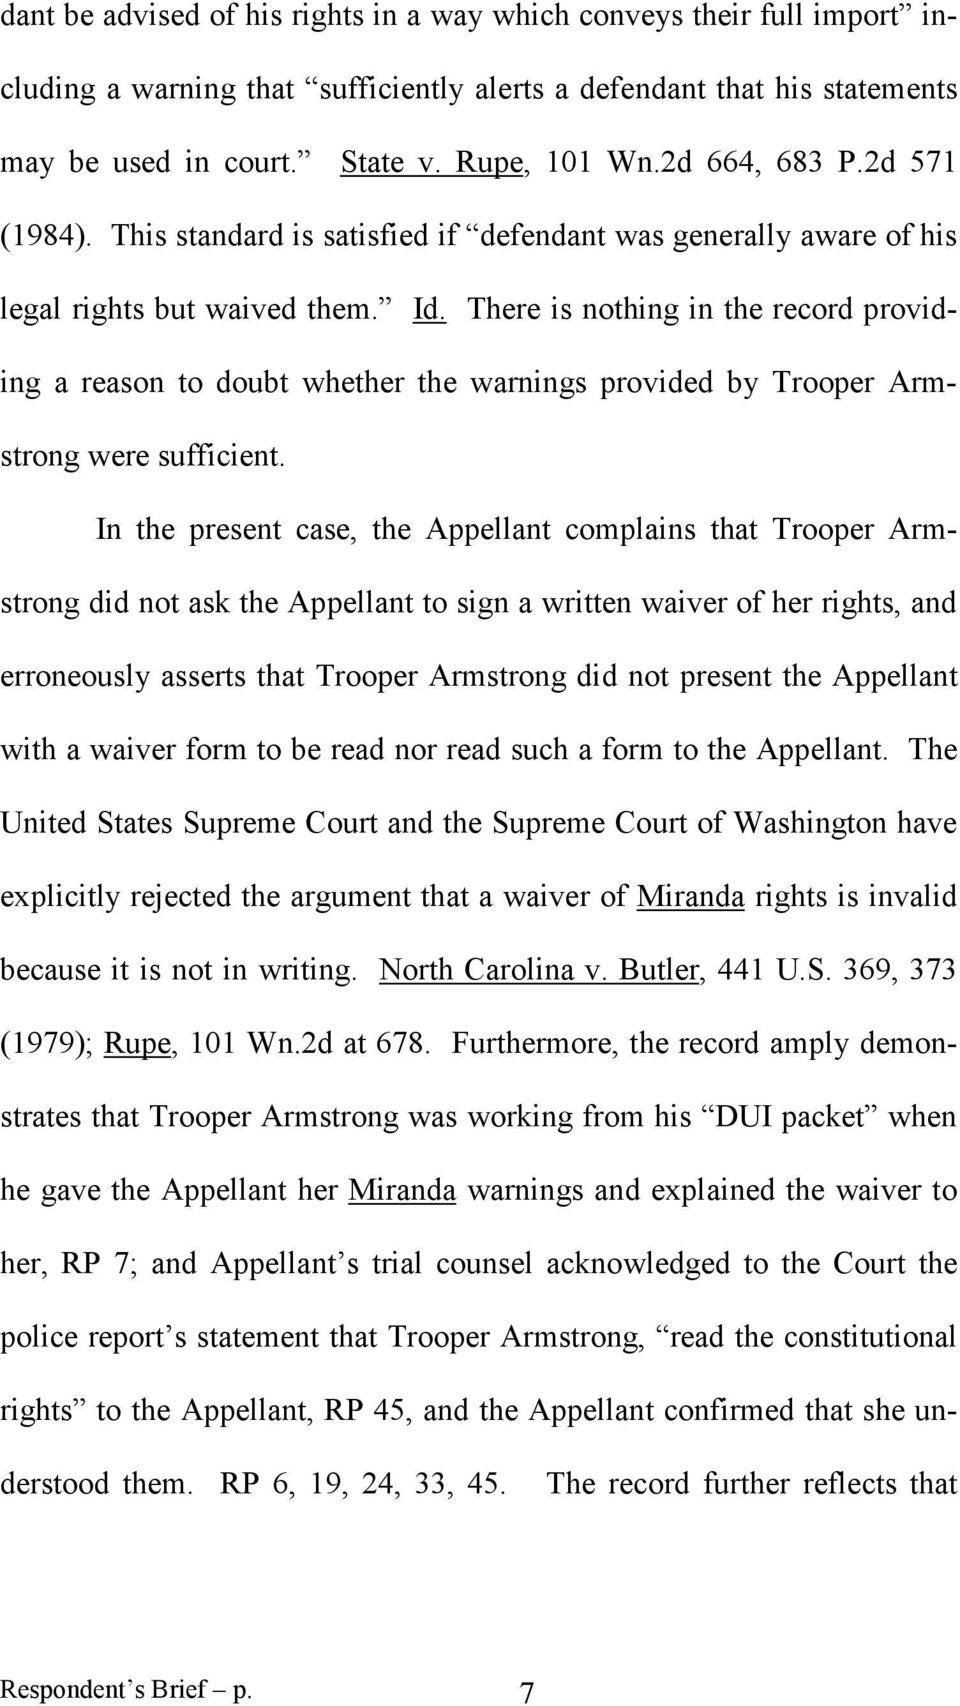 There is nothing in the record providing a reason to doubt whether the warnings provided by Trooper Armstrong were sufficient.